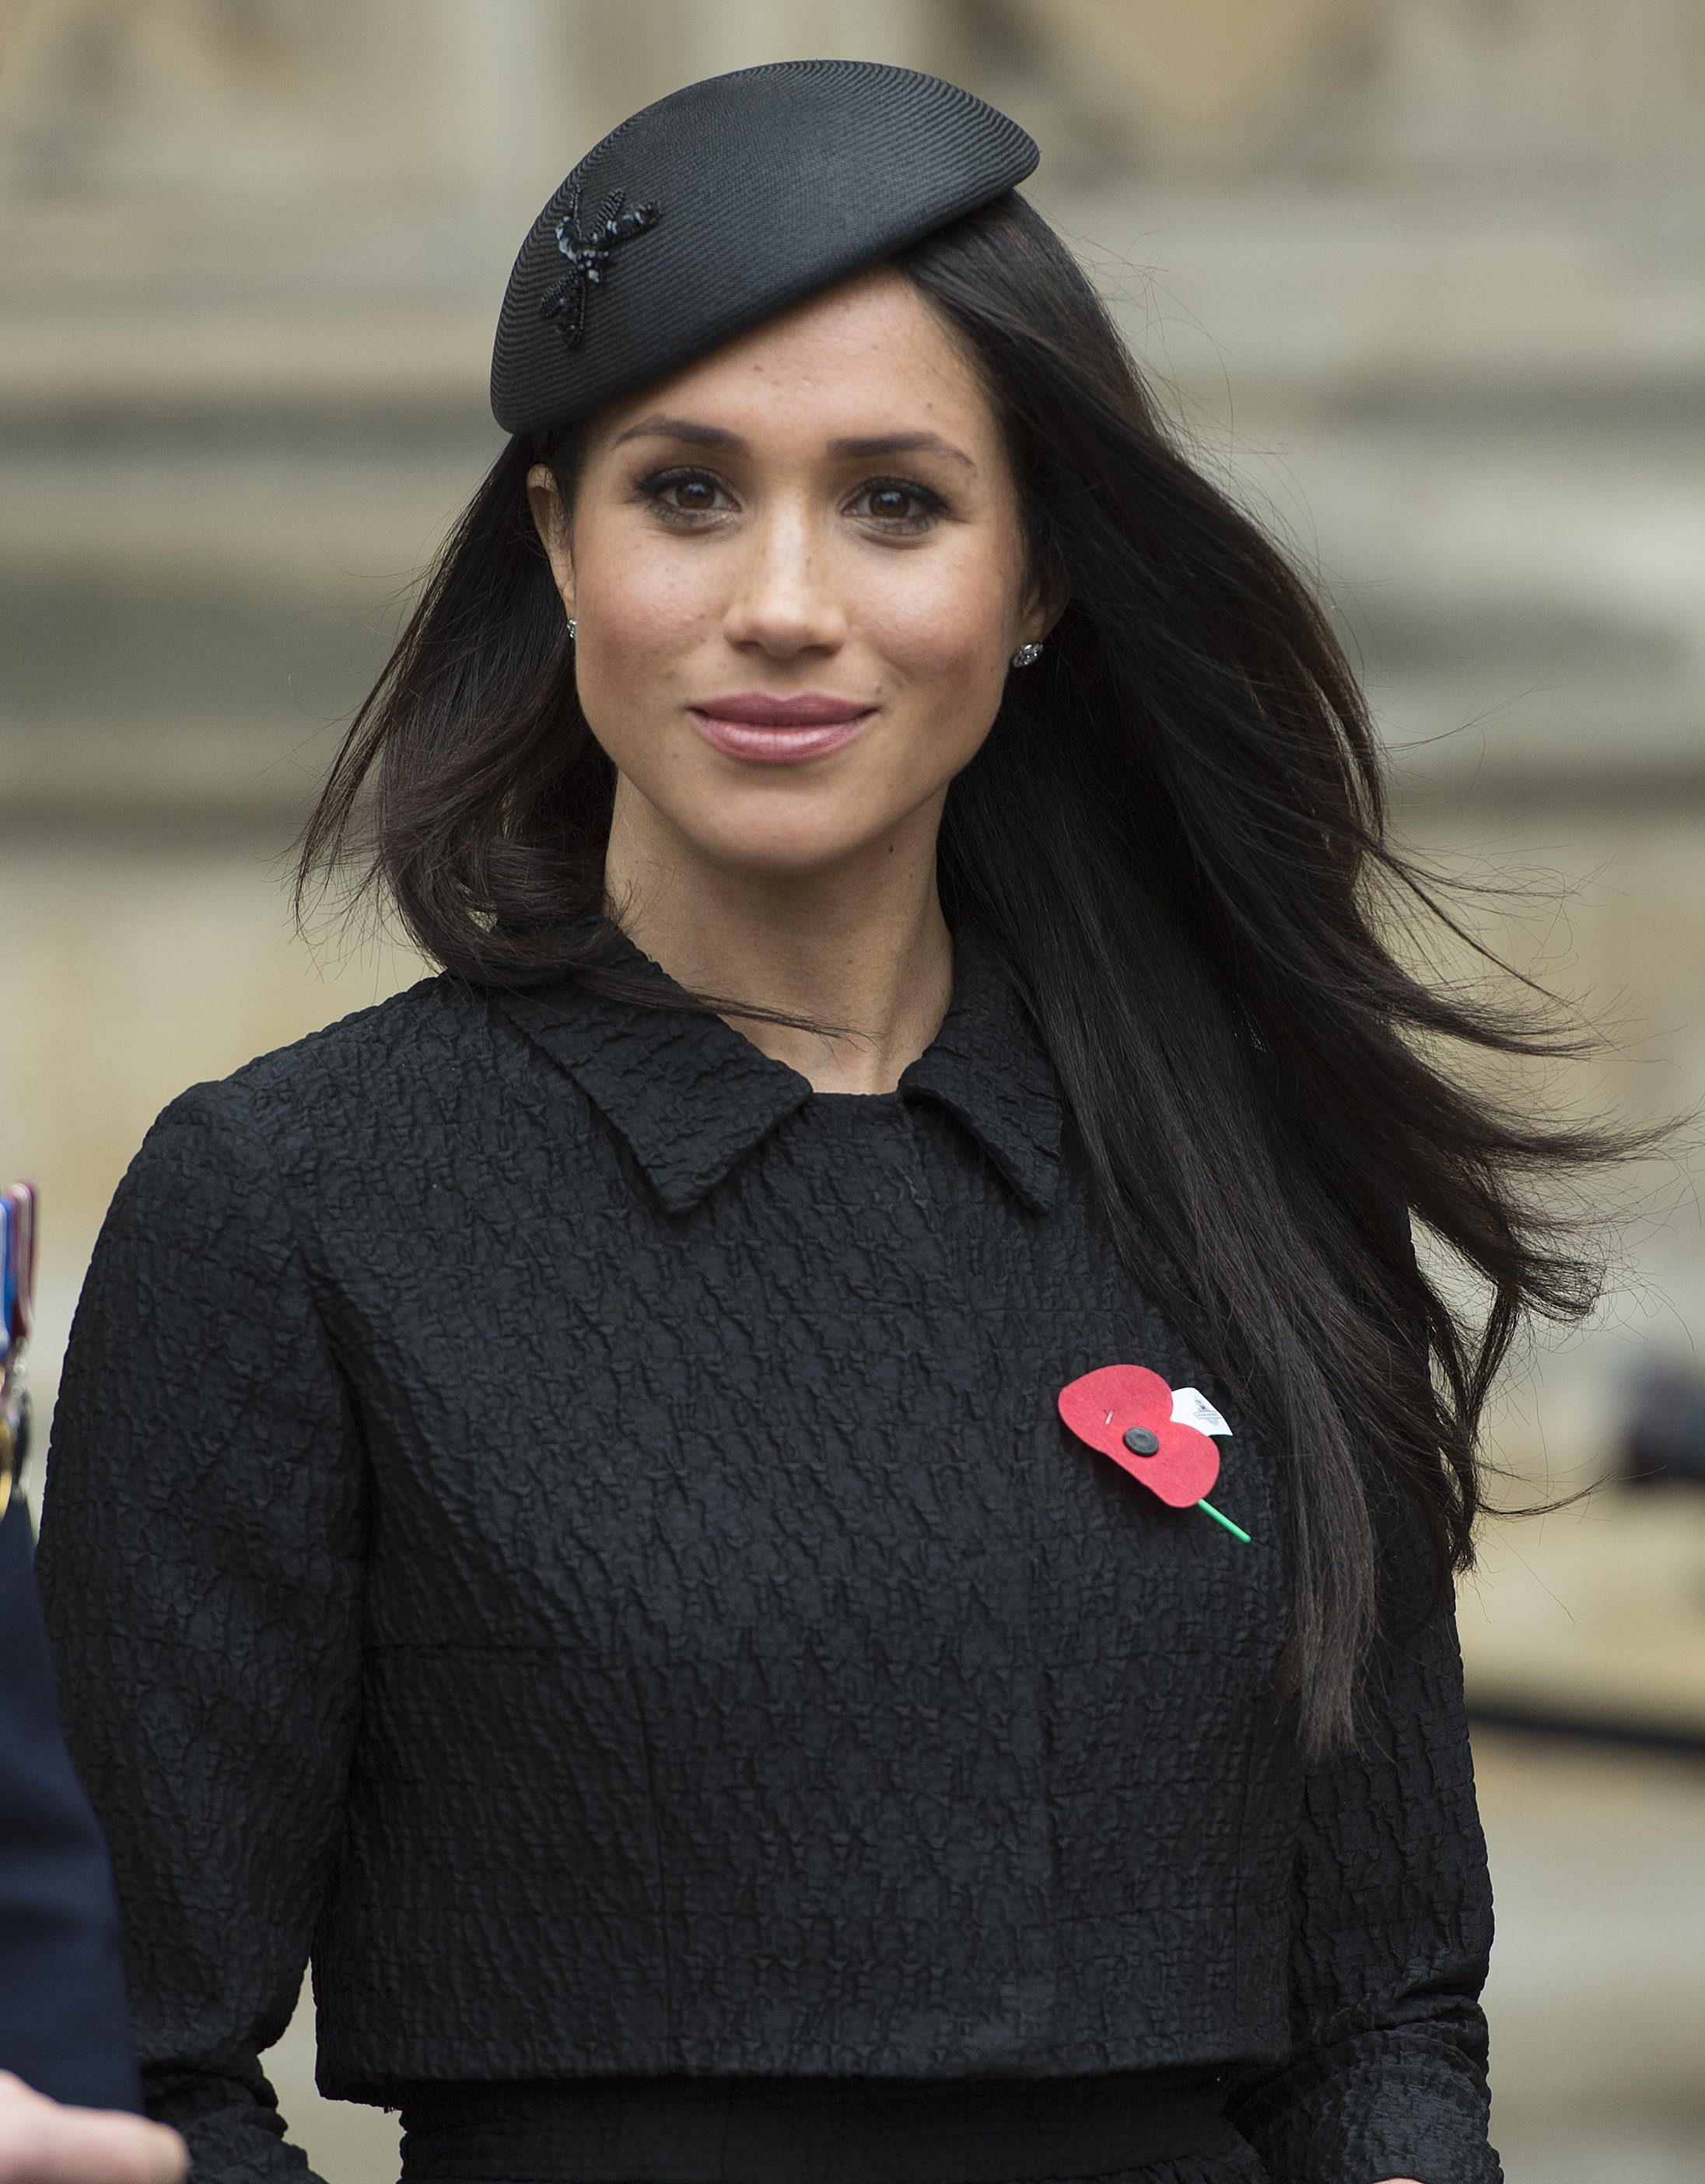 Image Credits: Getty Images / Eddie Mulholland - WPA Pool | Meghan Markle attends an Anzac Day service at Westminster Abbey on April 25, 2018 in London, England.